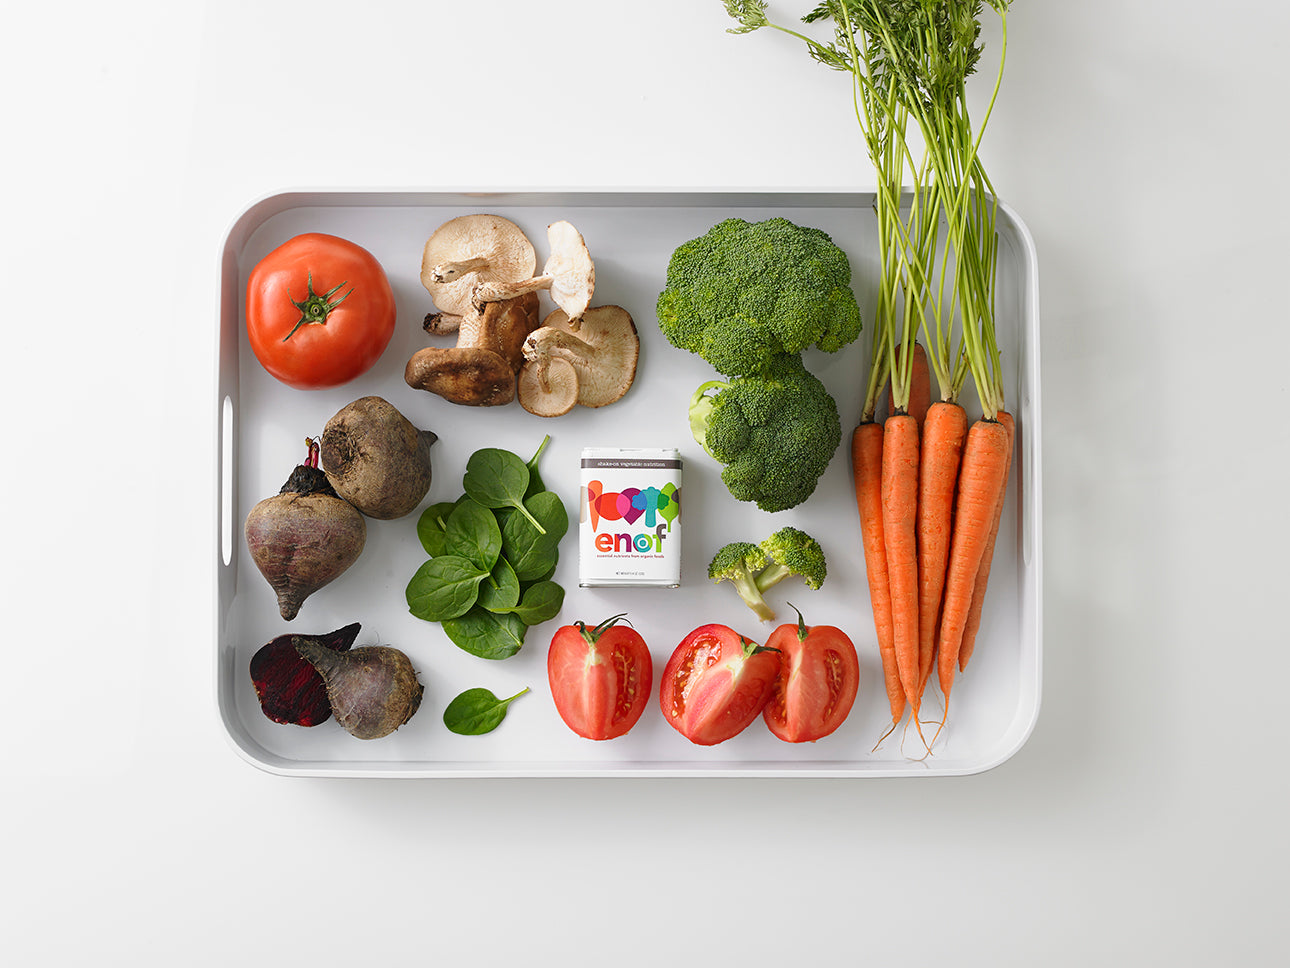 enof and veggies on white tray